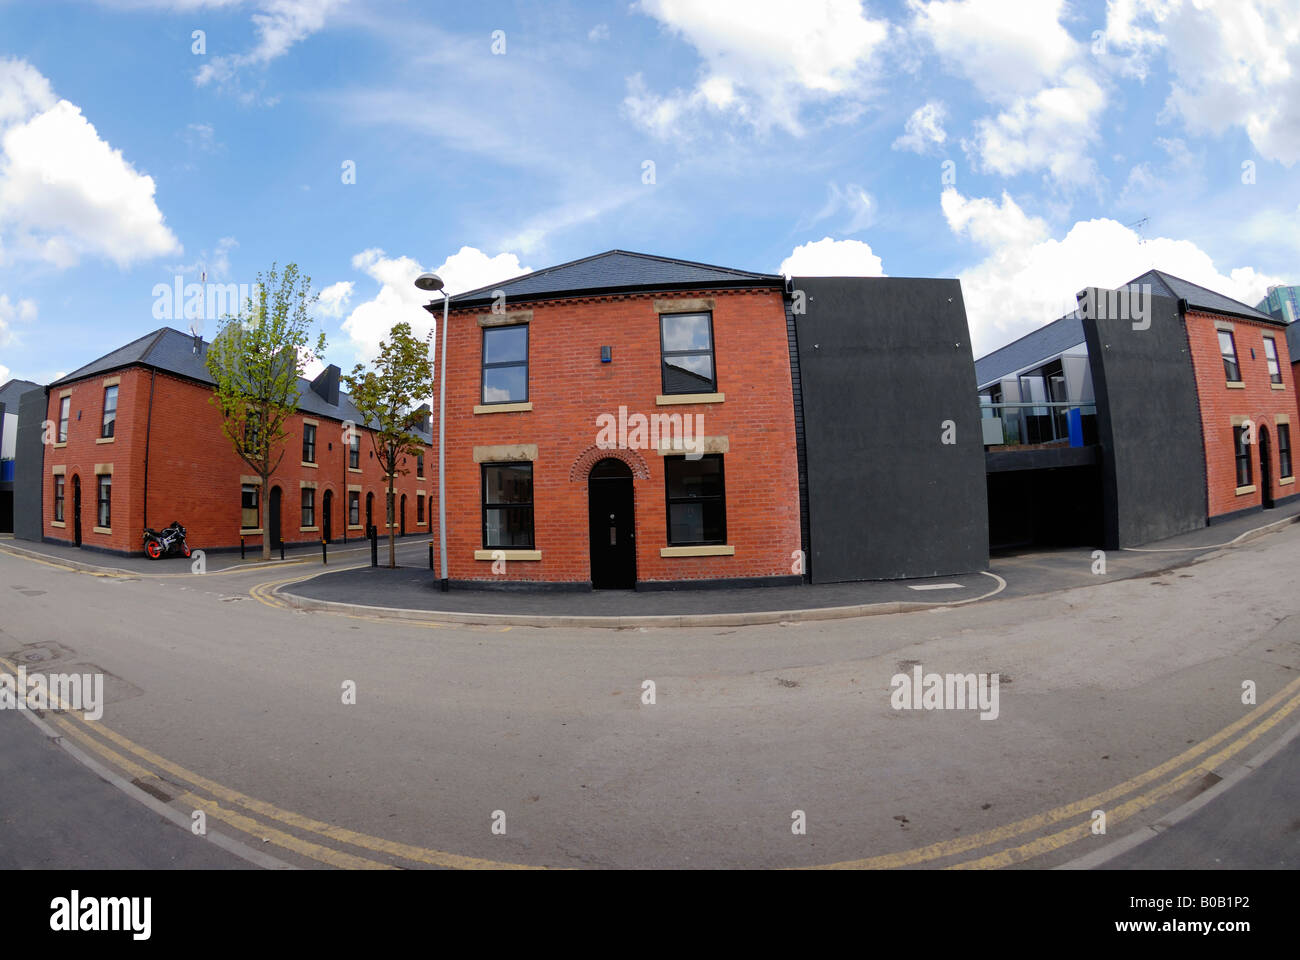 Terraced houses being refurbished in the Langworthy area of Salford in Greater Manchester. Chimney Pot Park estate. - Stock Image